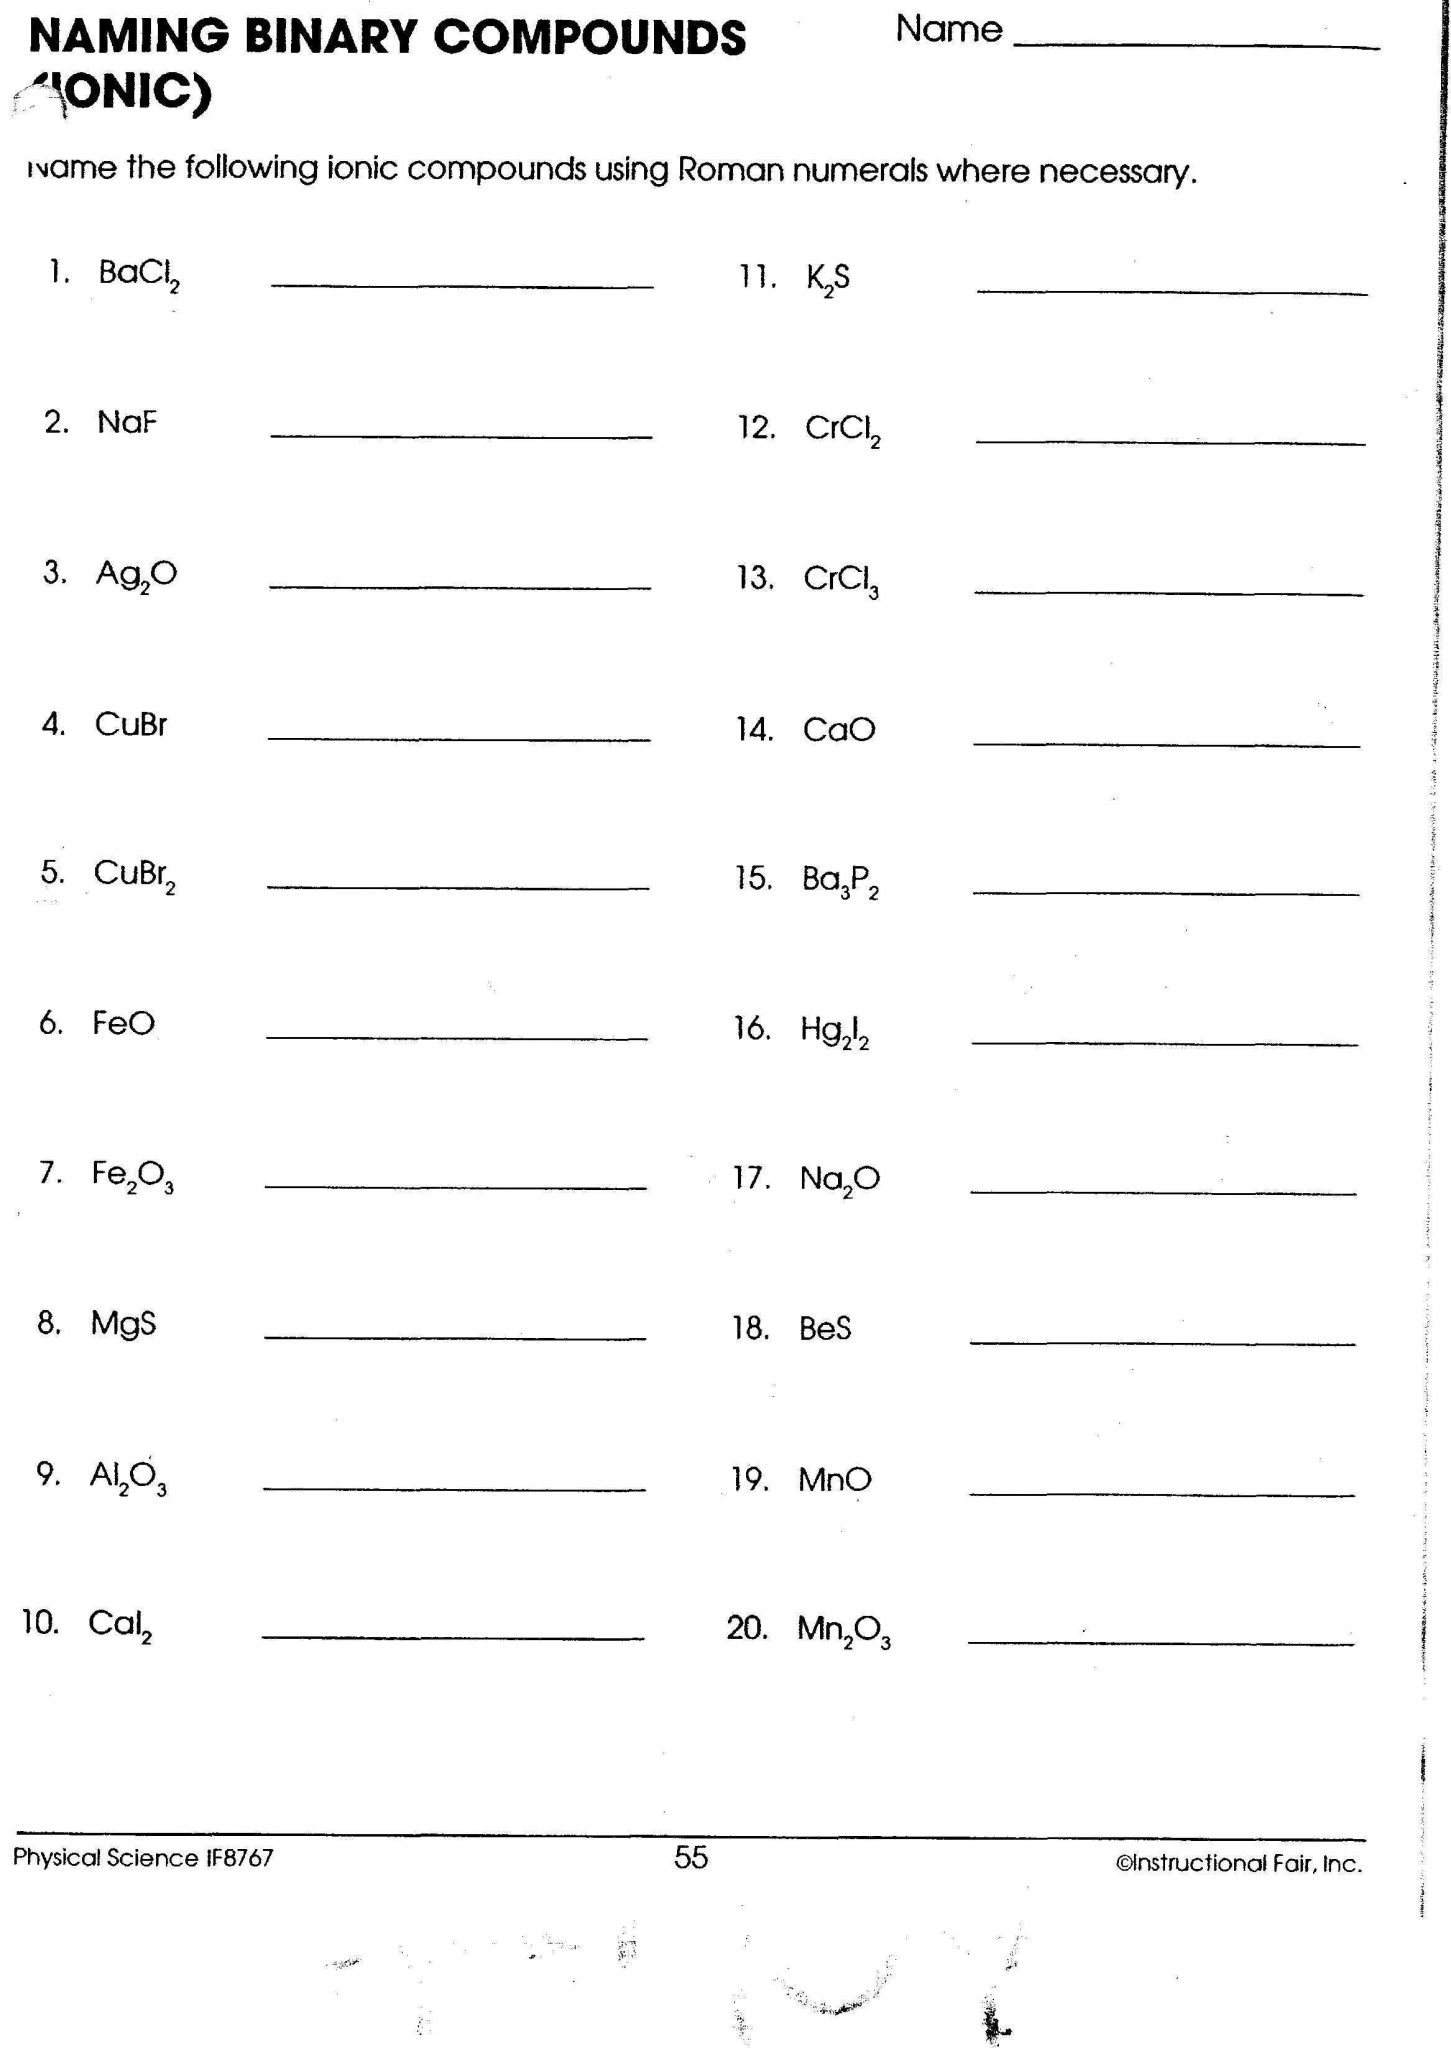 Polyatomic Ions Worksheet together with Simple Binary Ionic Pounds Worksheet Choice Image Worksheet